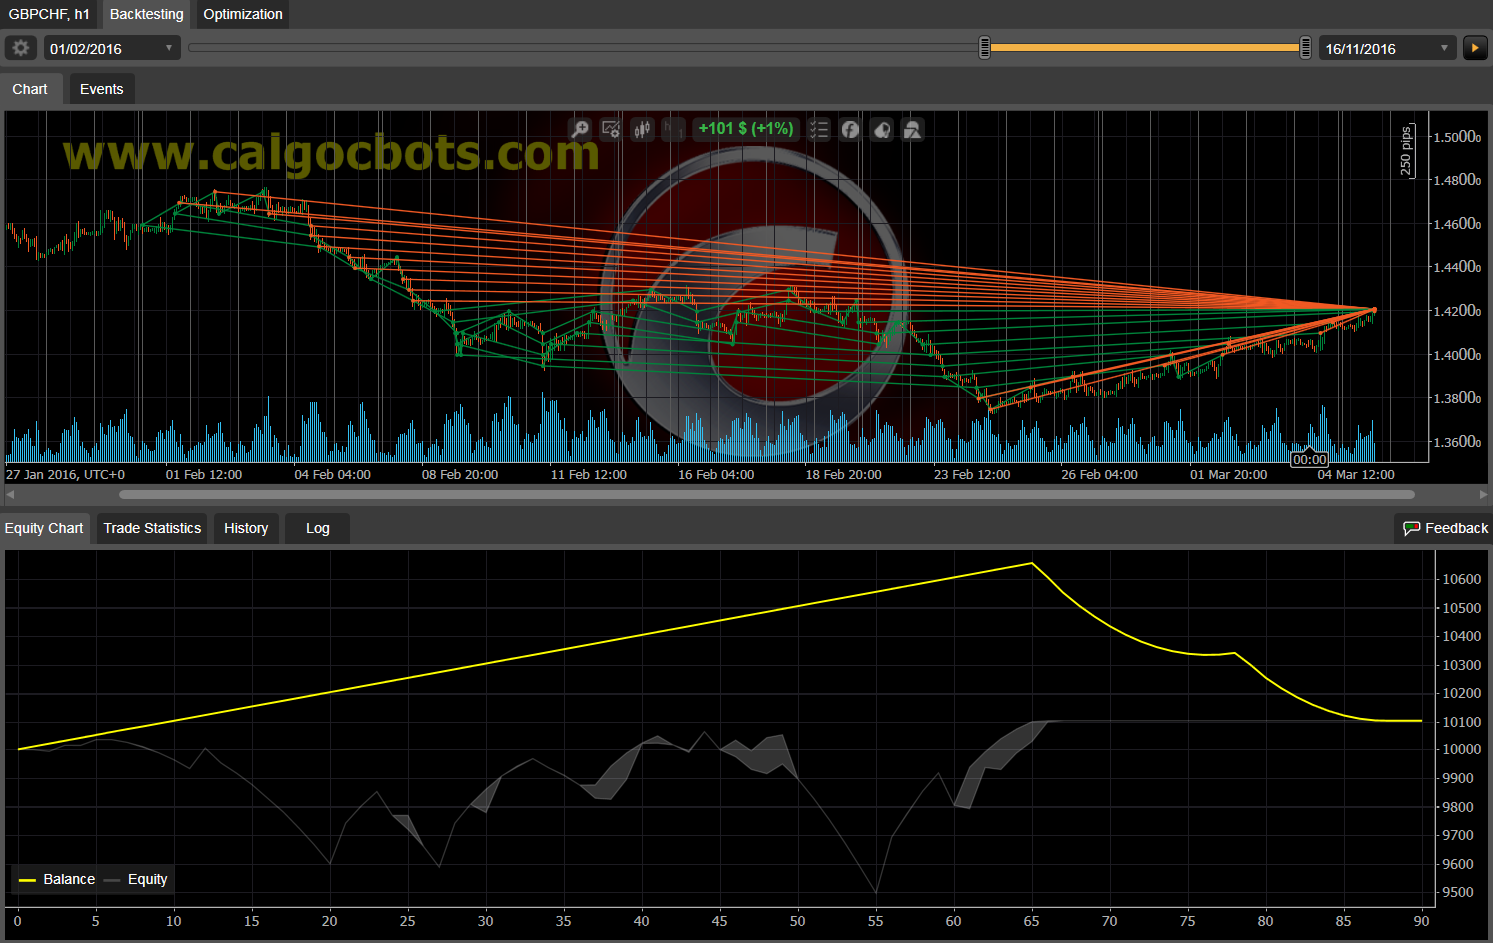 Dual Grid Hedge GBP CHF 1h cAlgo cBots cTrader 100 50 100 - 07